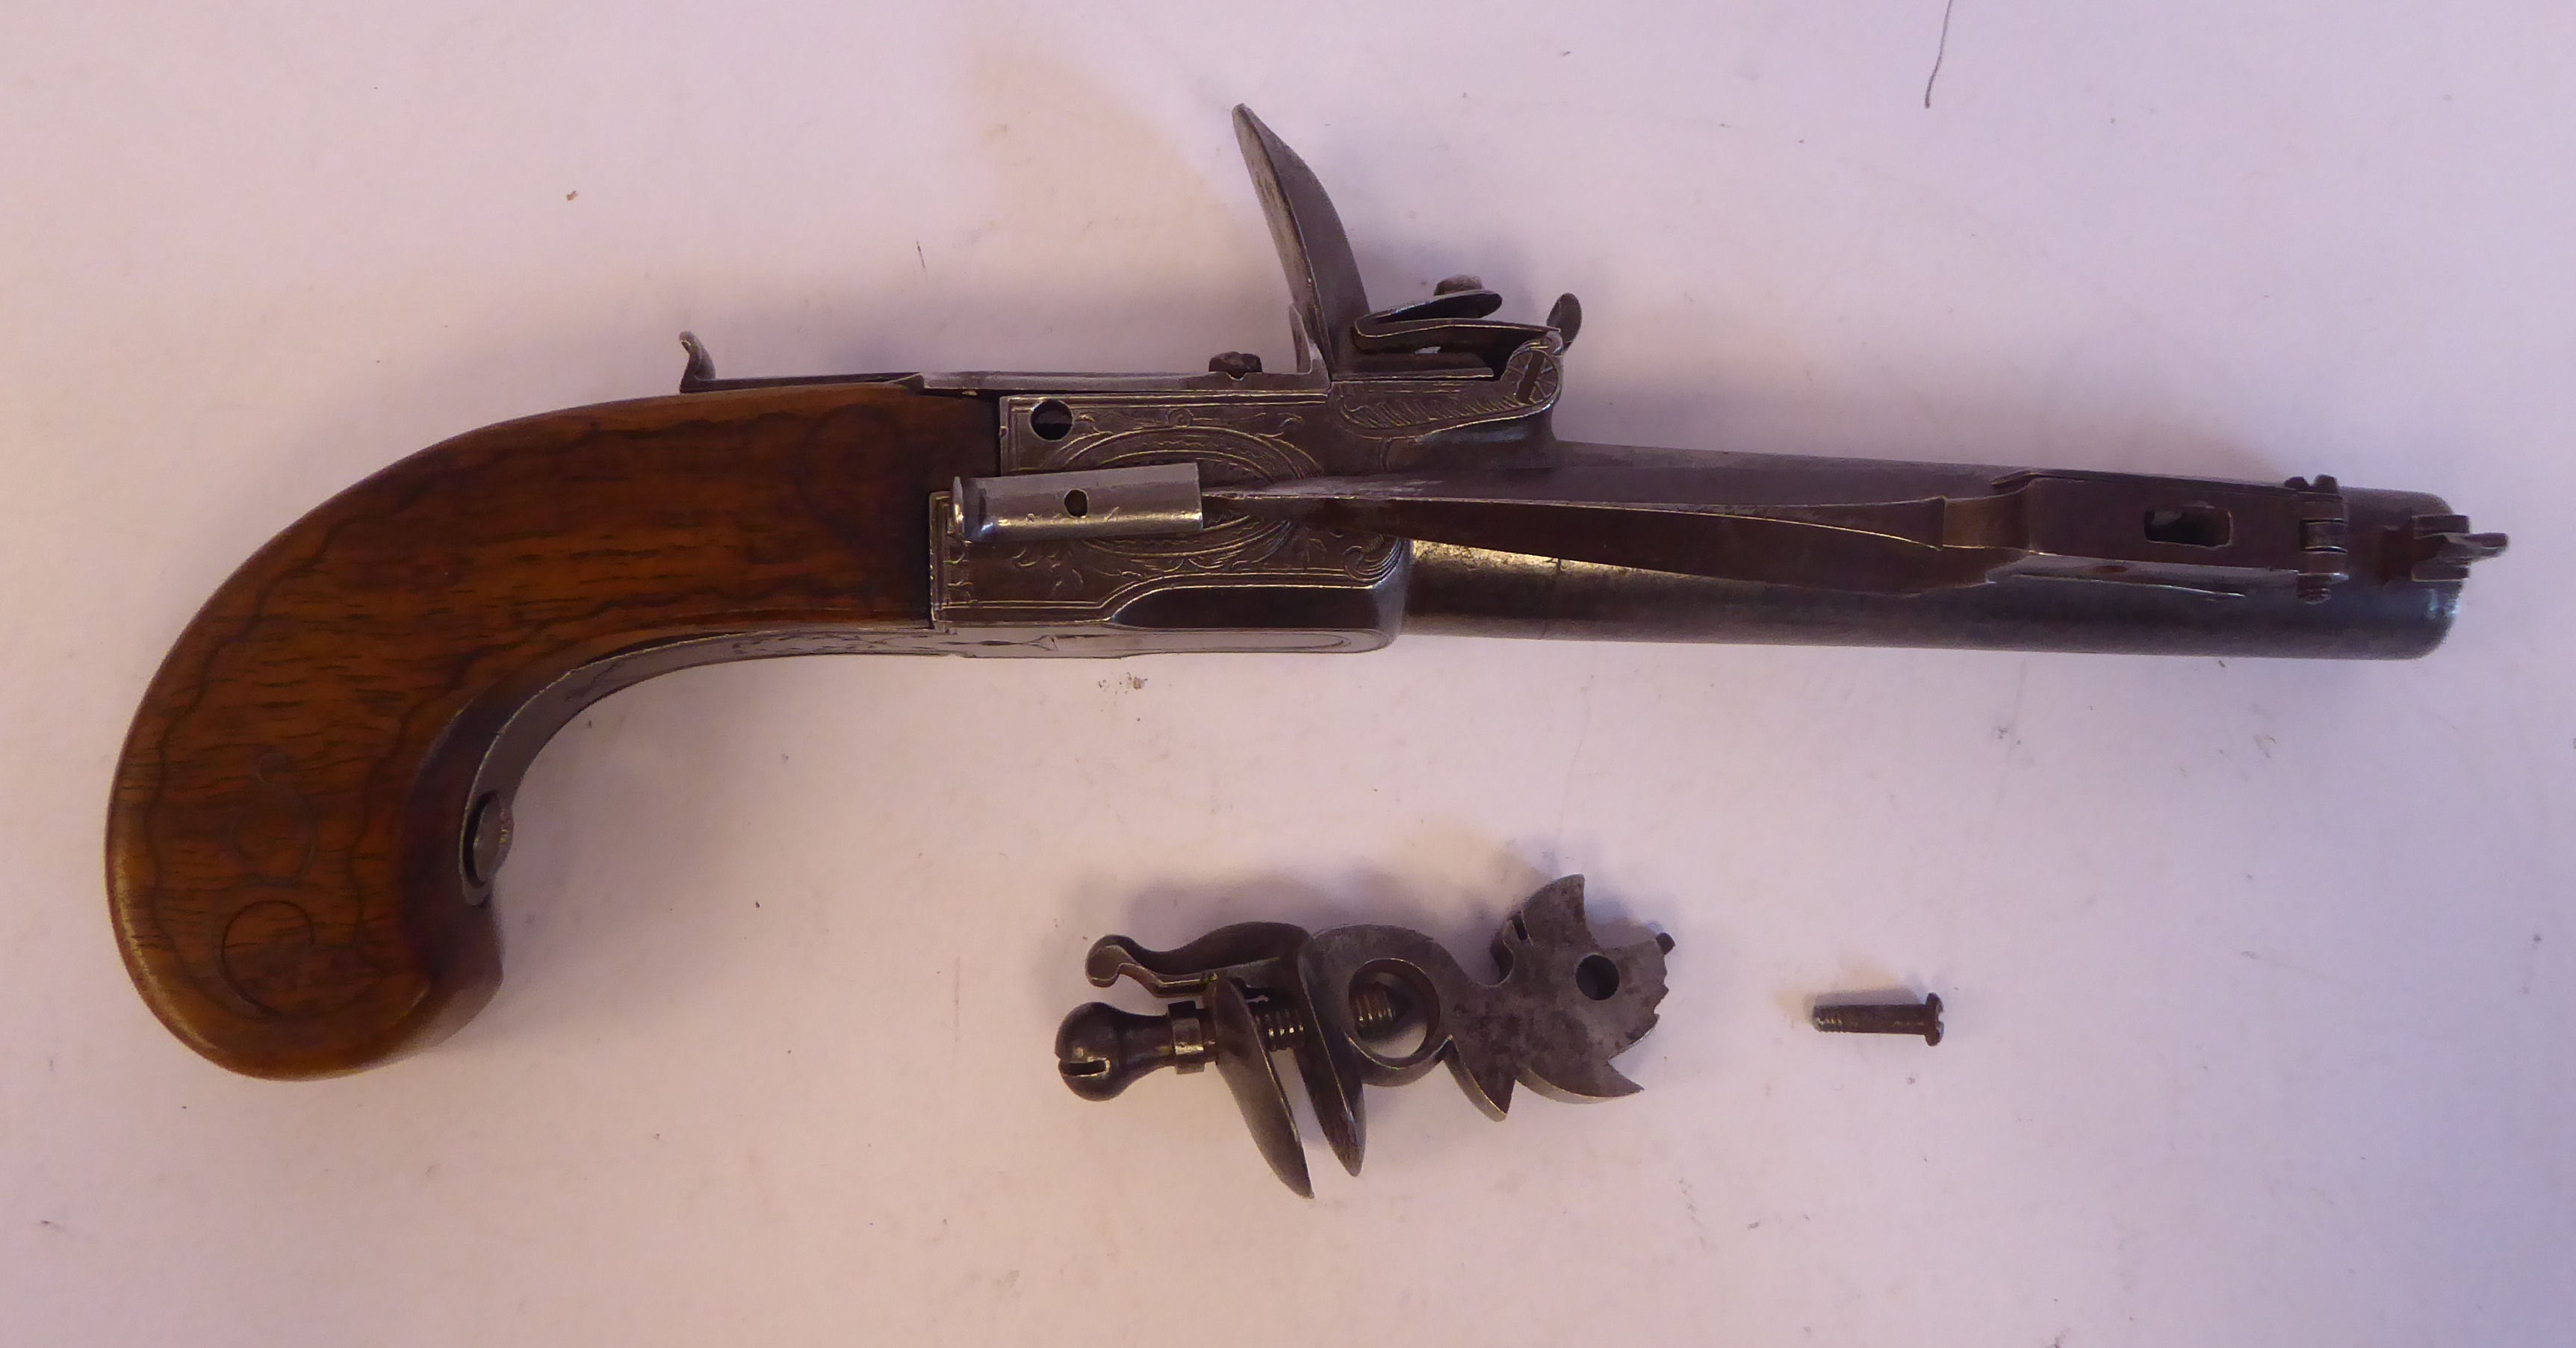 A 19thC Continental flintlock pistol with a folding trigger, inlaid wire ornament on the walnut - Image 2 of 9